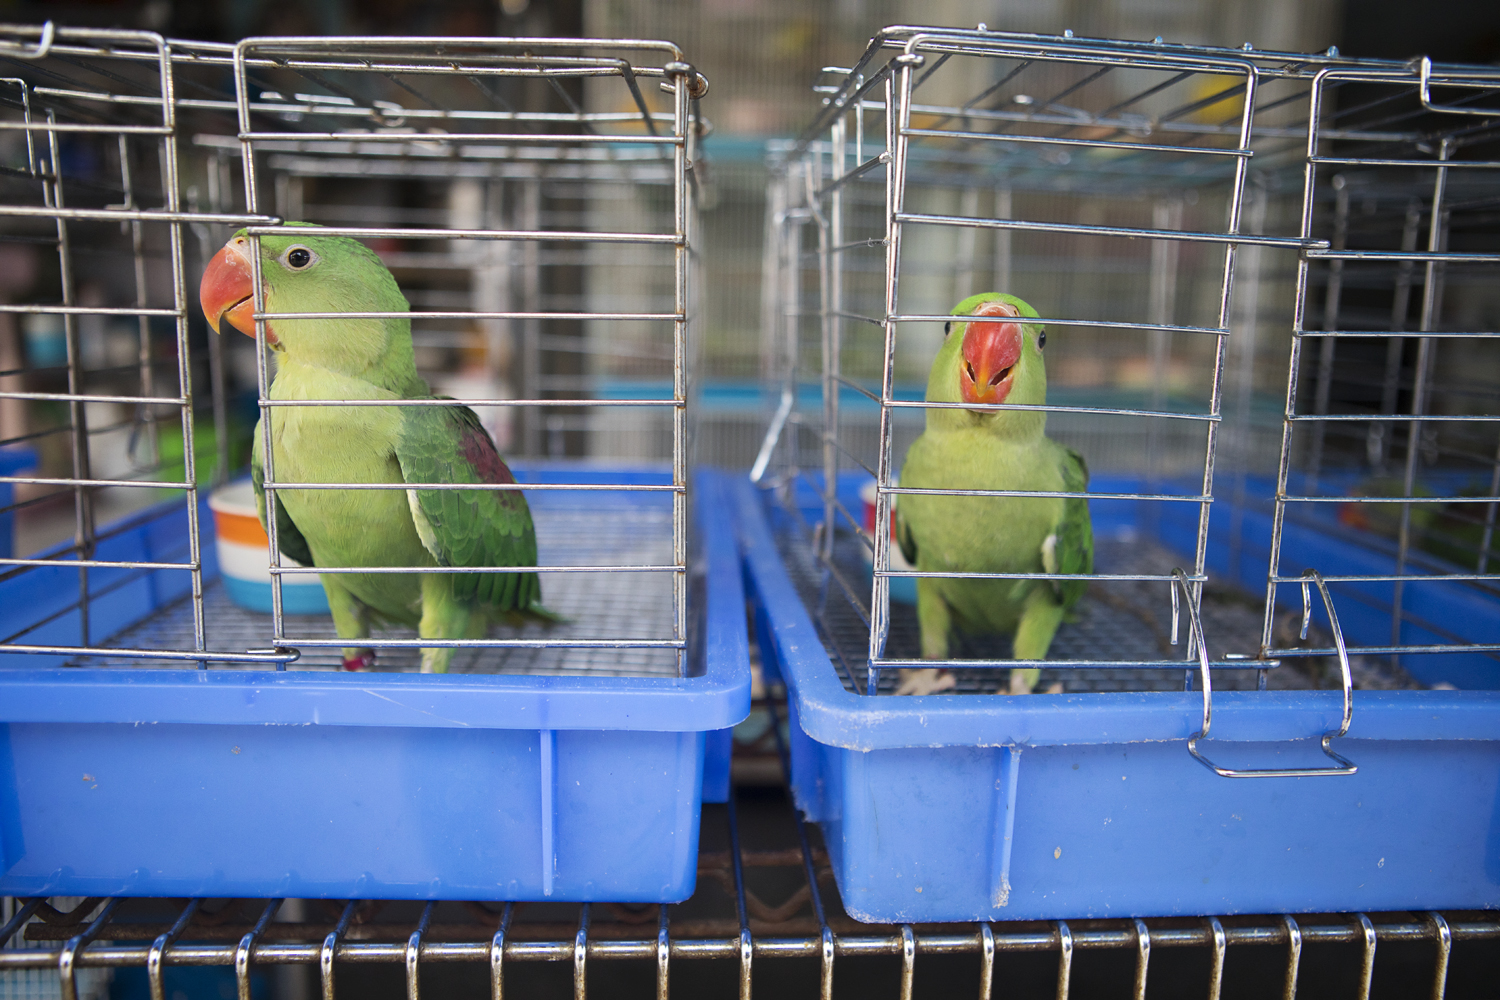 - Two Alexandrine Parakeets (Psittacula eupatria) seen here at Chatuchak market. This species is listed as 'near threatened' on the IUCN red list.The reason it has become threatened is that it is widely captured and traded as a cage-bird. Despite the near-disappearance of the species from Thailand, nestlings still appear in illegal trade in Bangkok bird markets, although they possibly originate from Cambodia.